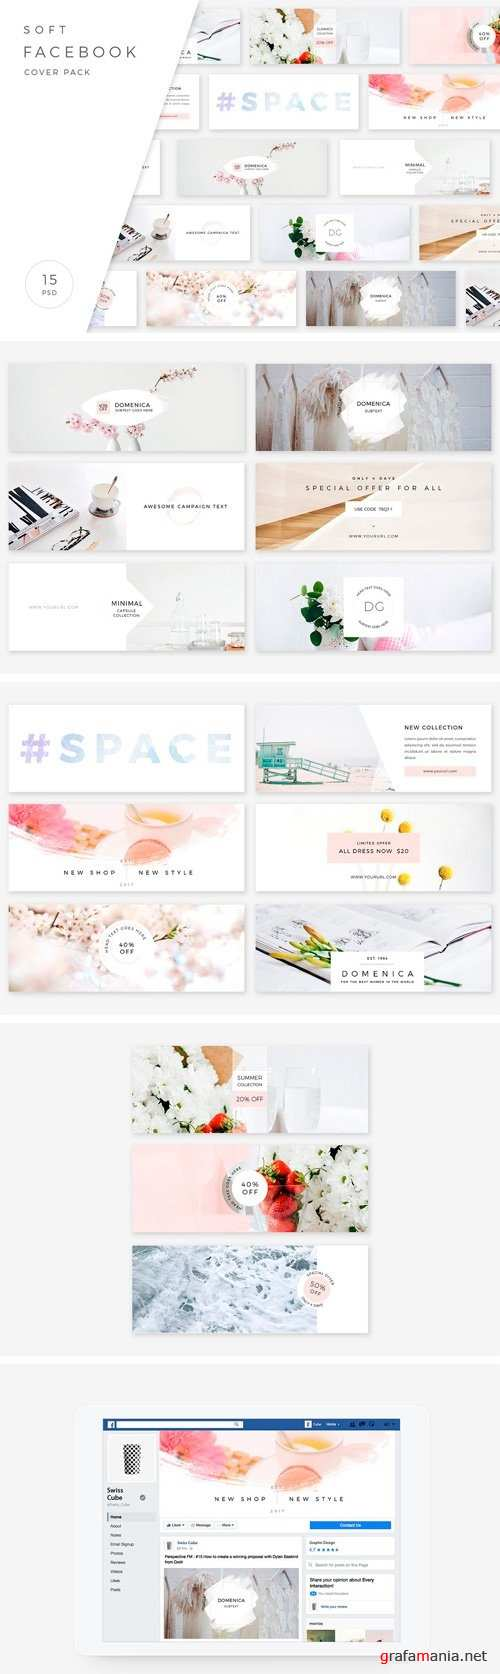 Soft Facebook Cover Pack 1791735